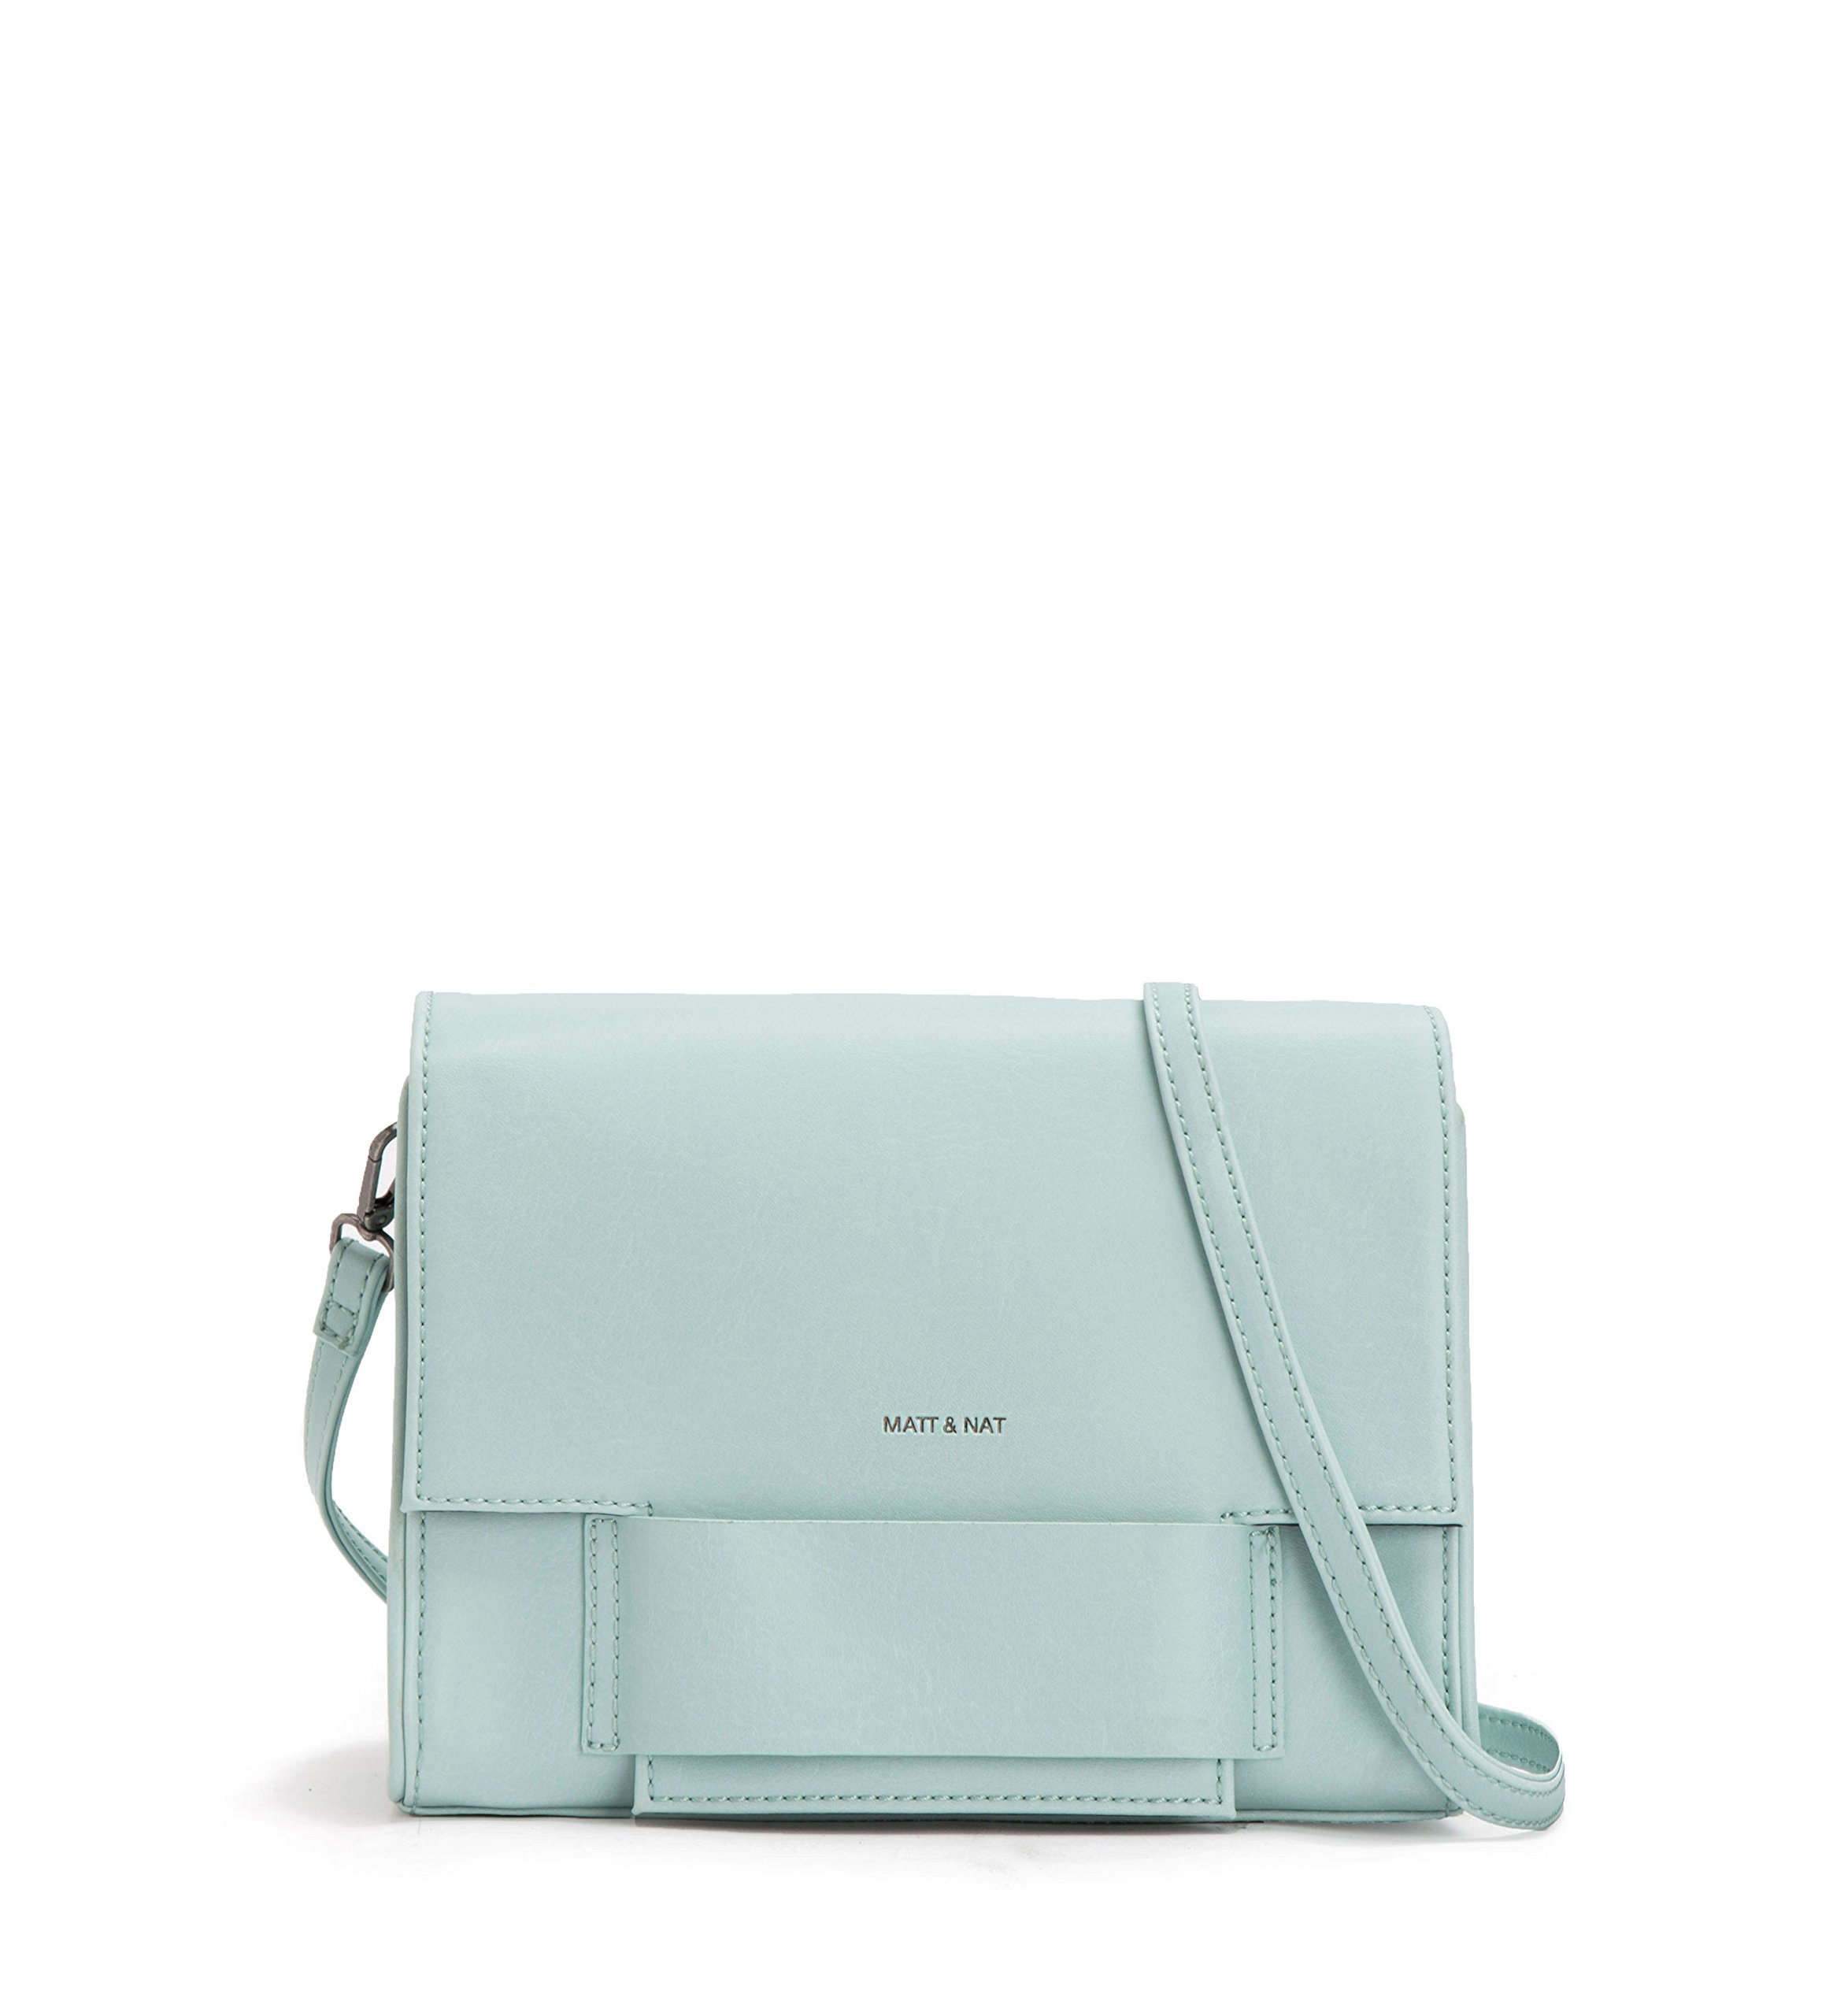 Matt & Nat Shareen Vintage Crossbody Bag, Glass by Matt & Nat